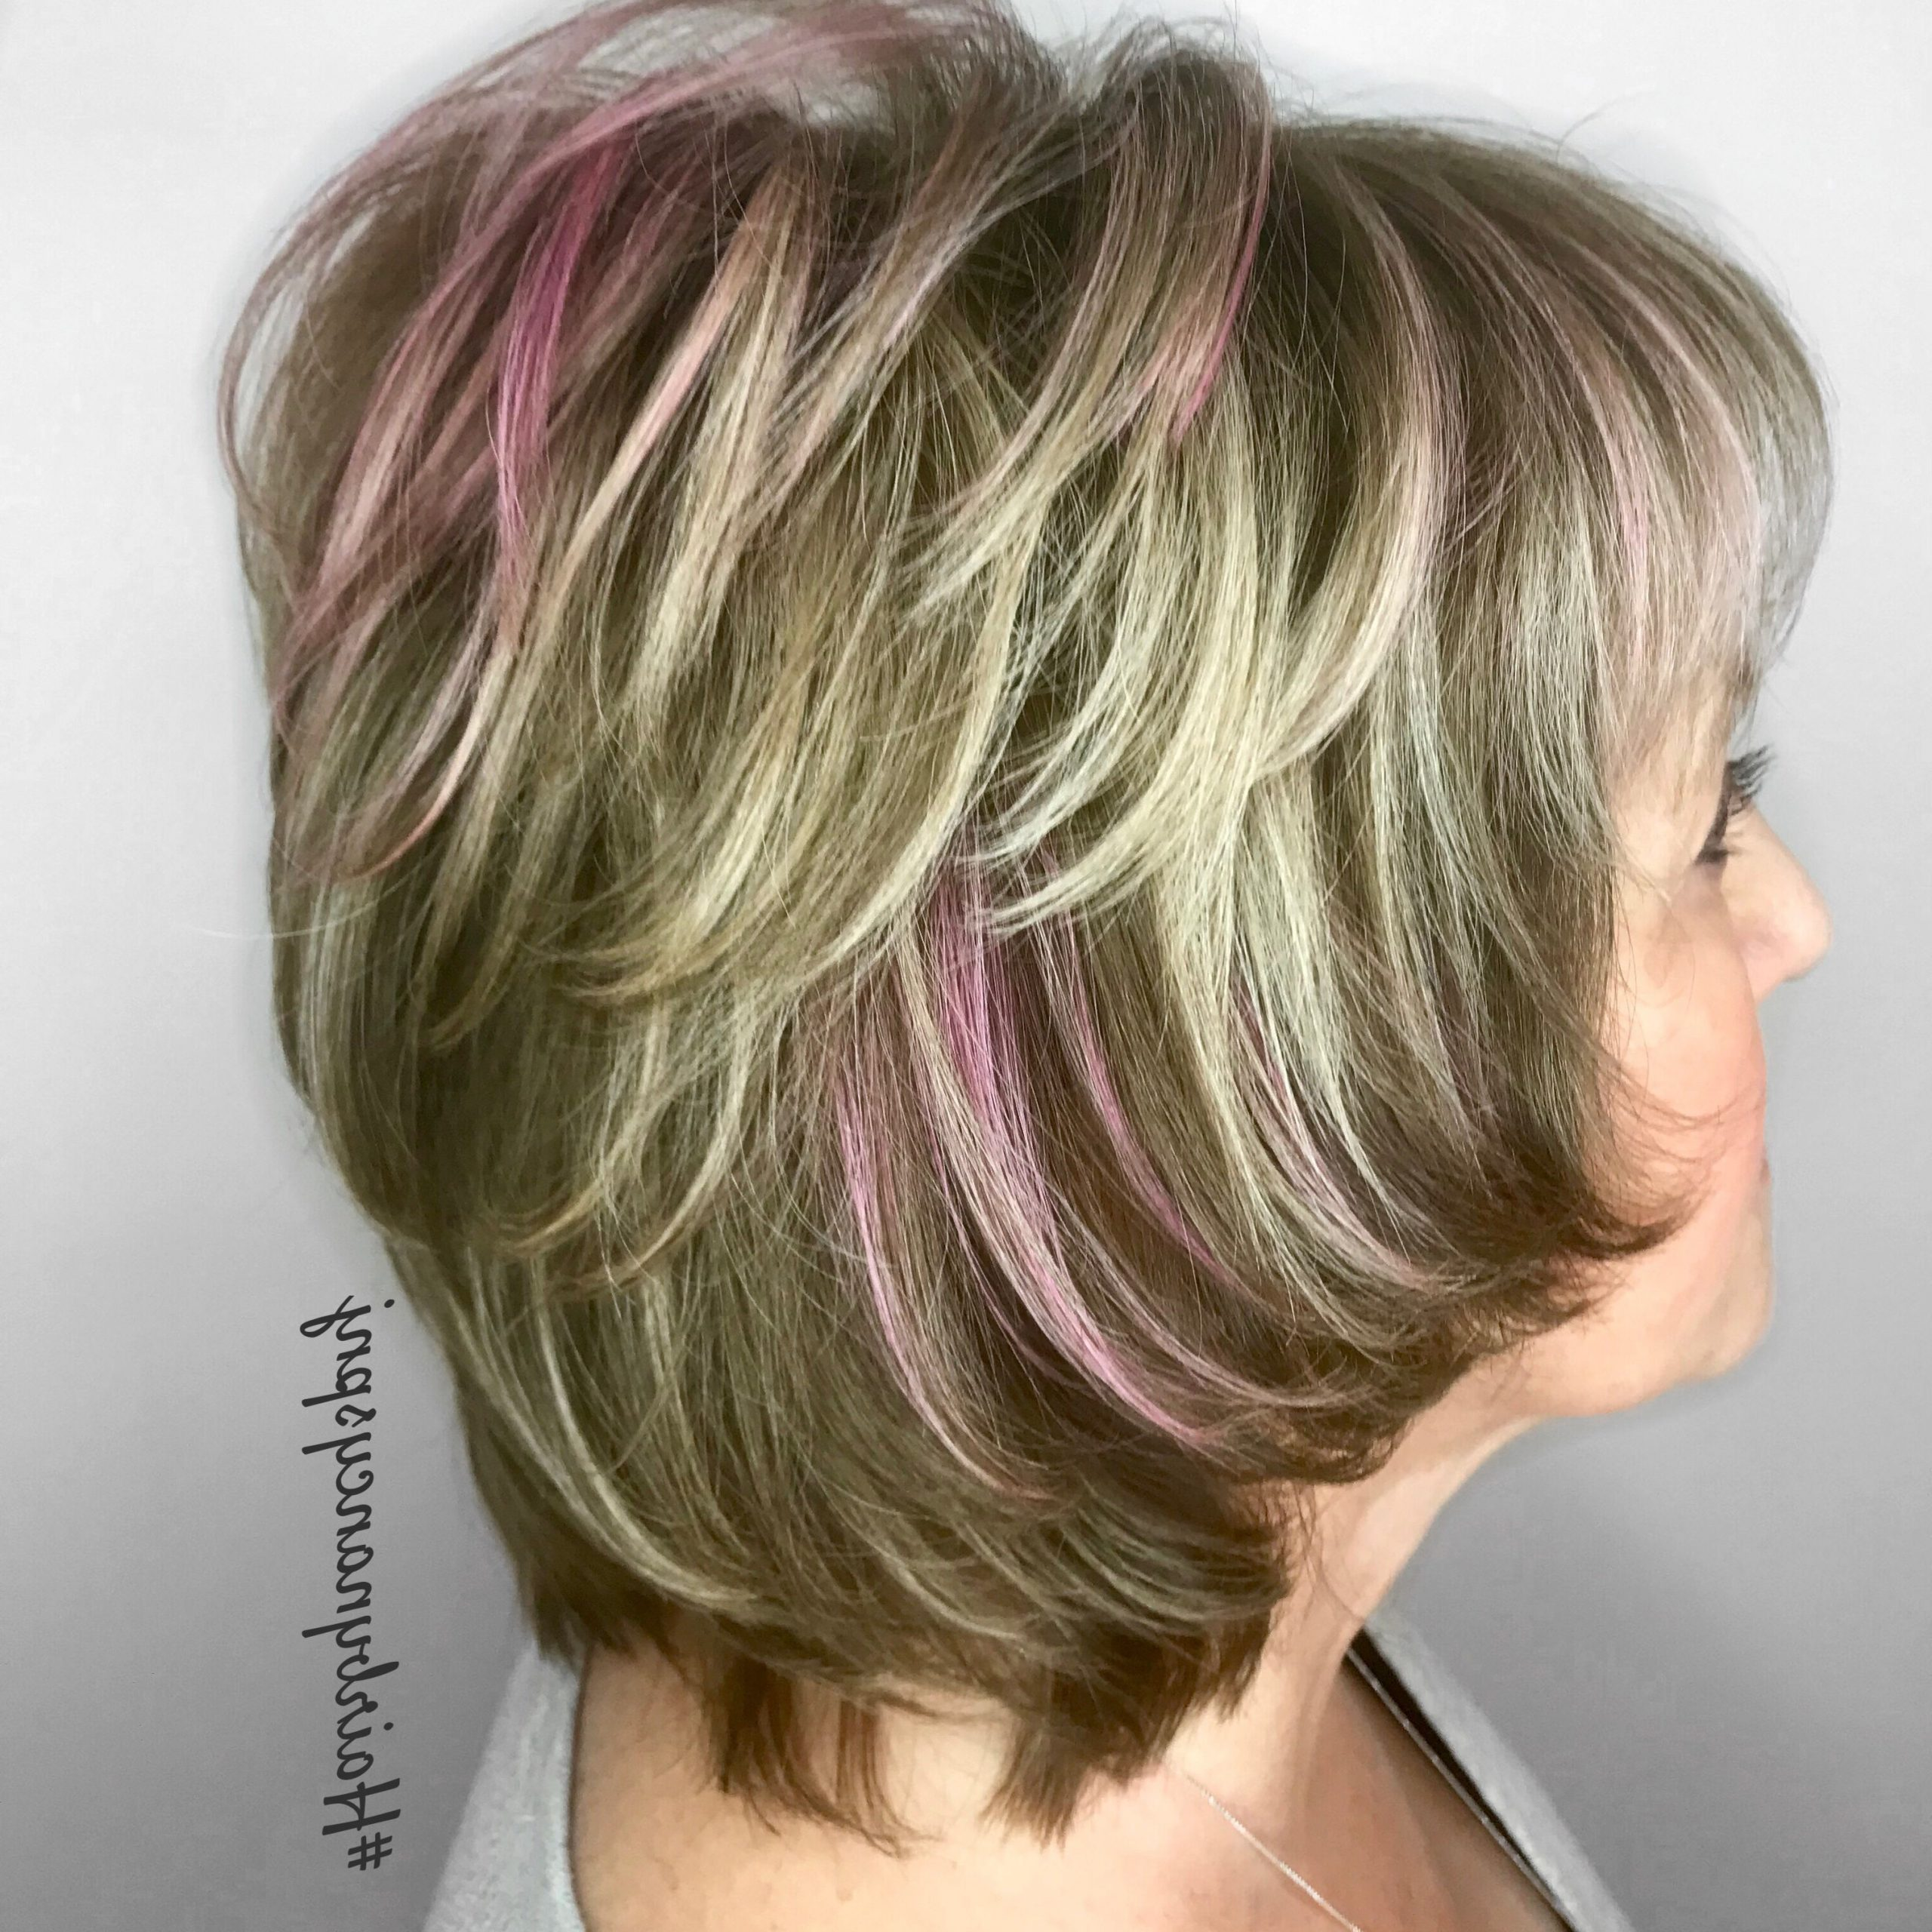 Pink Hair #hairbynancyscotchplainsnj In 2019 | Hairstyles Regarding Pink Shaggy Haircuts (View 16 of 20)